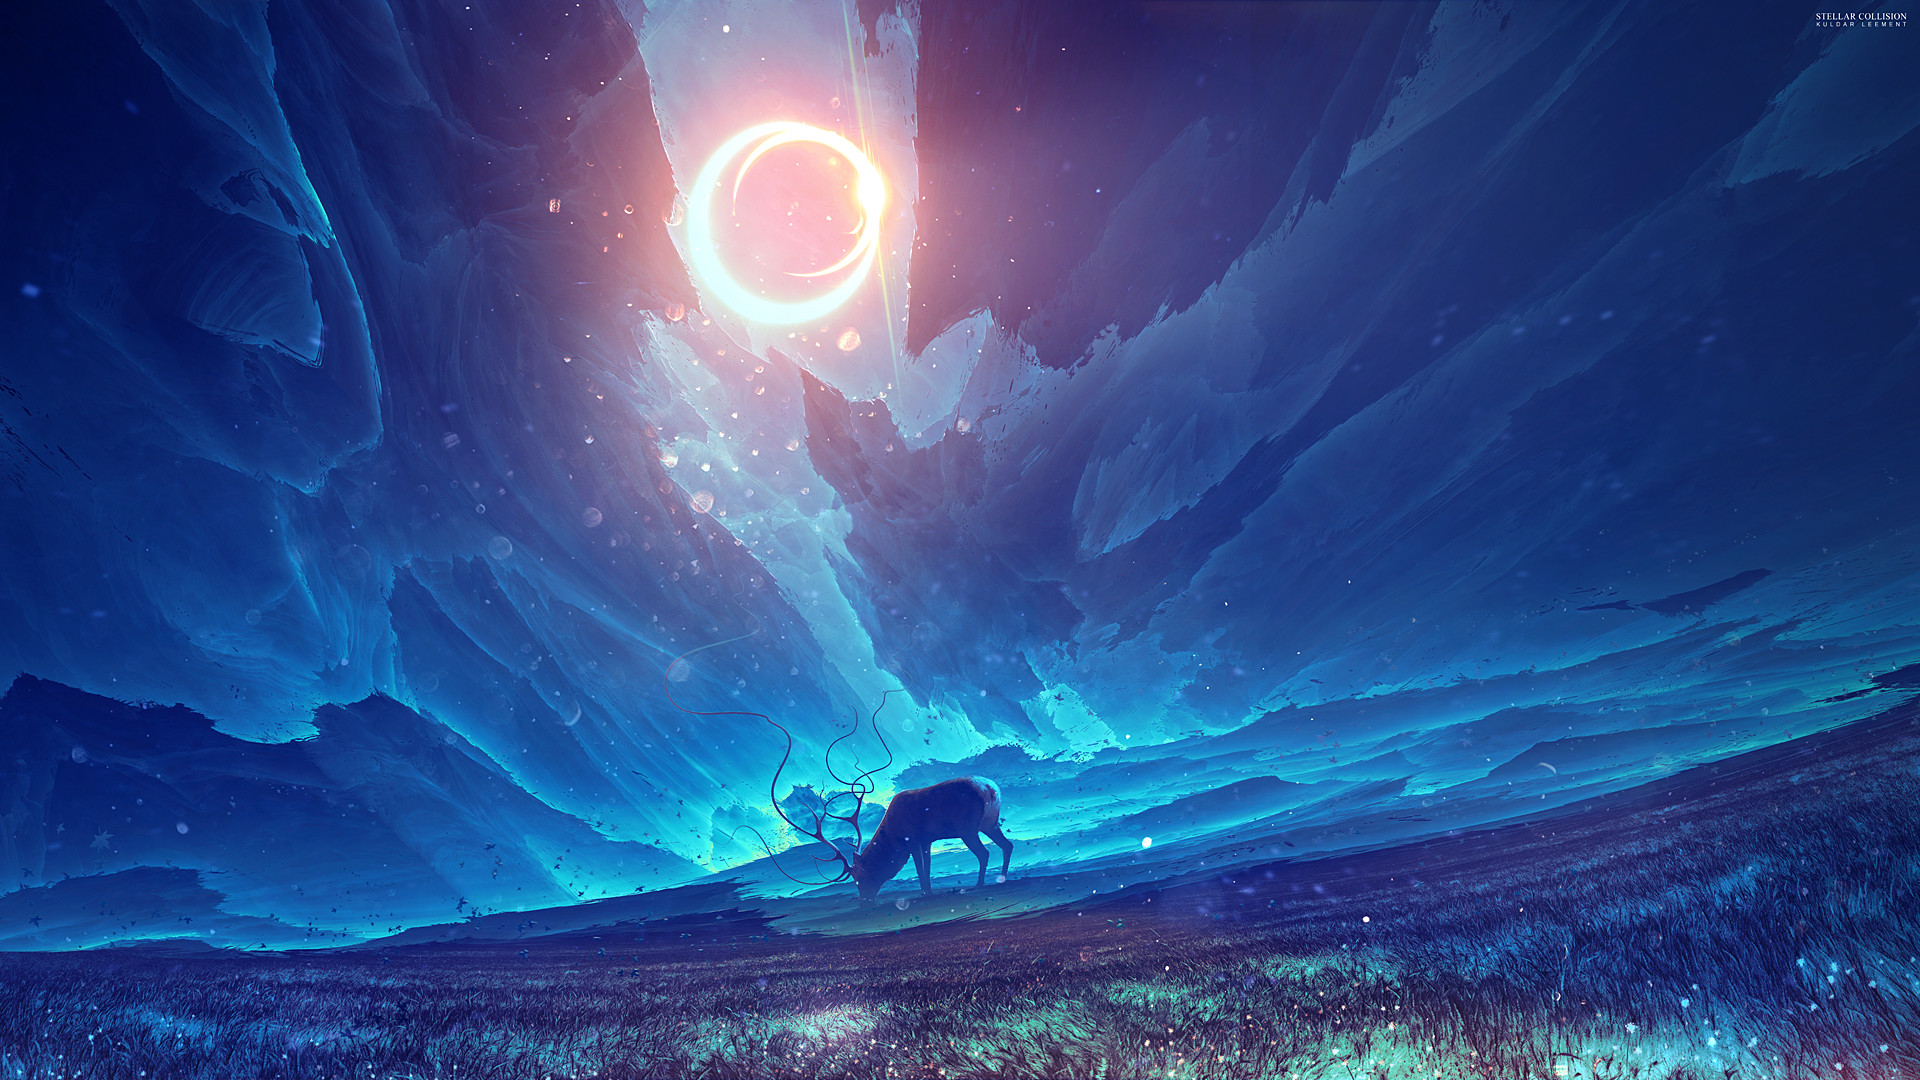 my favorite wallpapers (mostly fantasy)